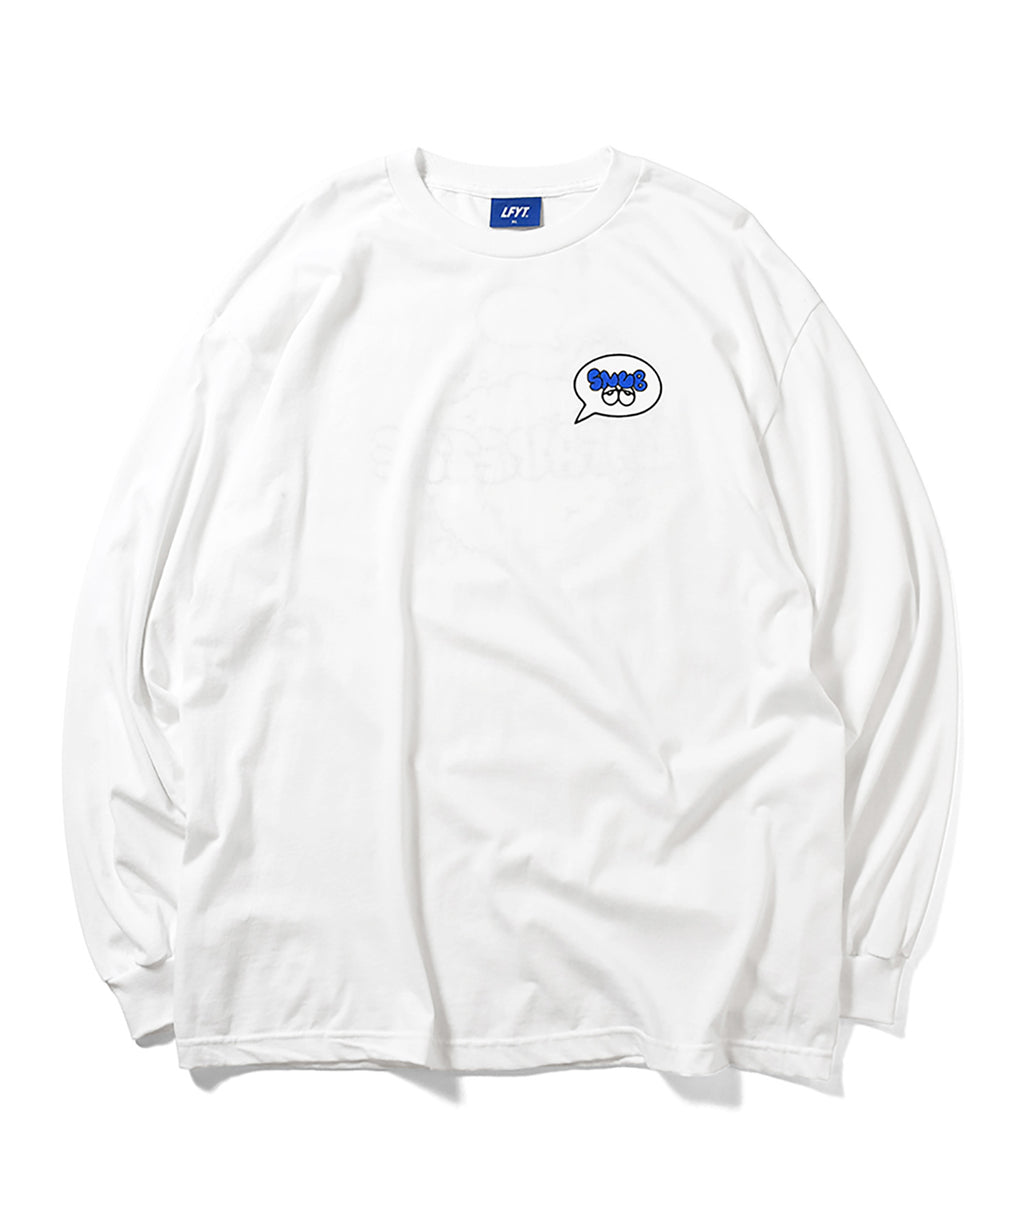 LFYT x Rabuns - THROW UP L/S TEE WHITE LA200103